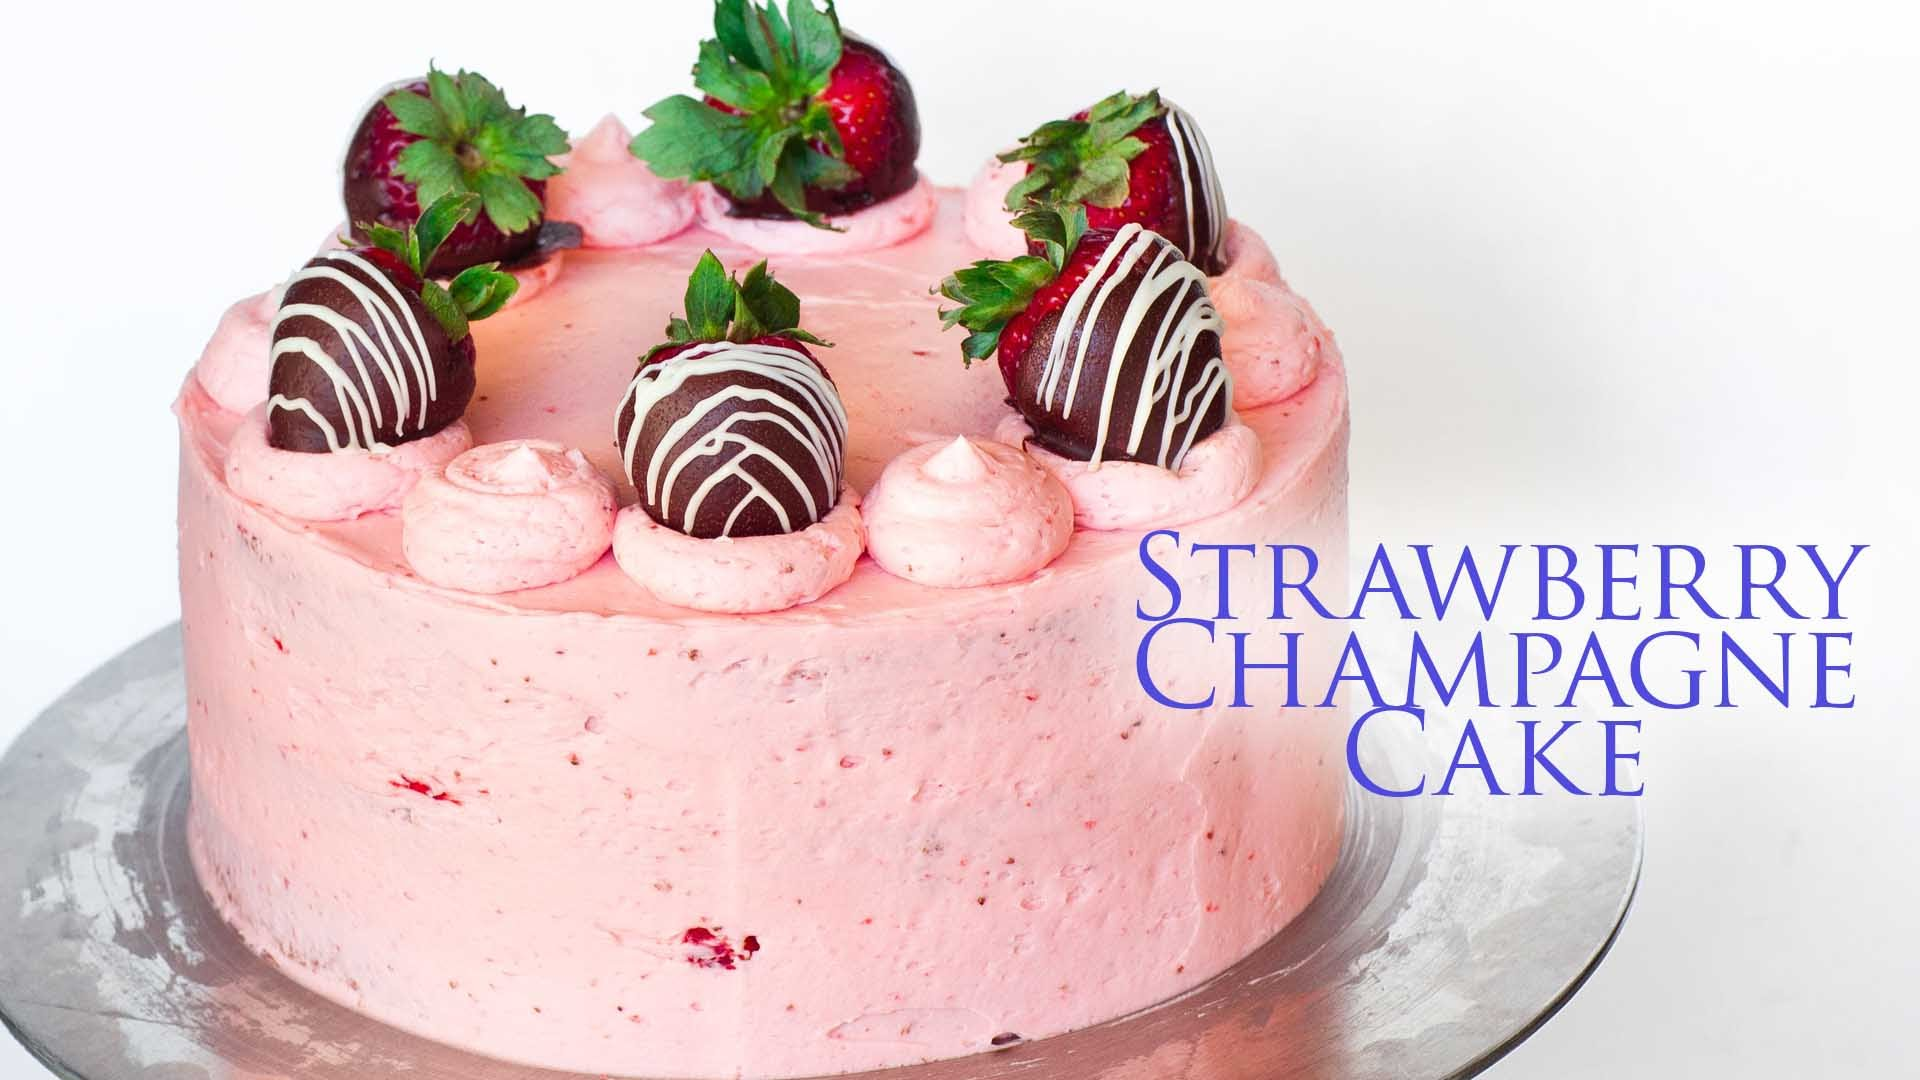 What 2 Incredible Ingredients Make This Strawberry Champagne Cake Irresistible?